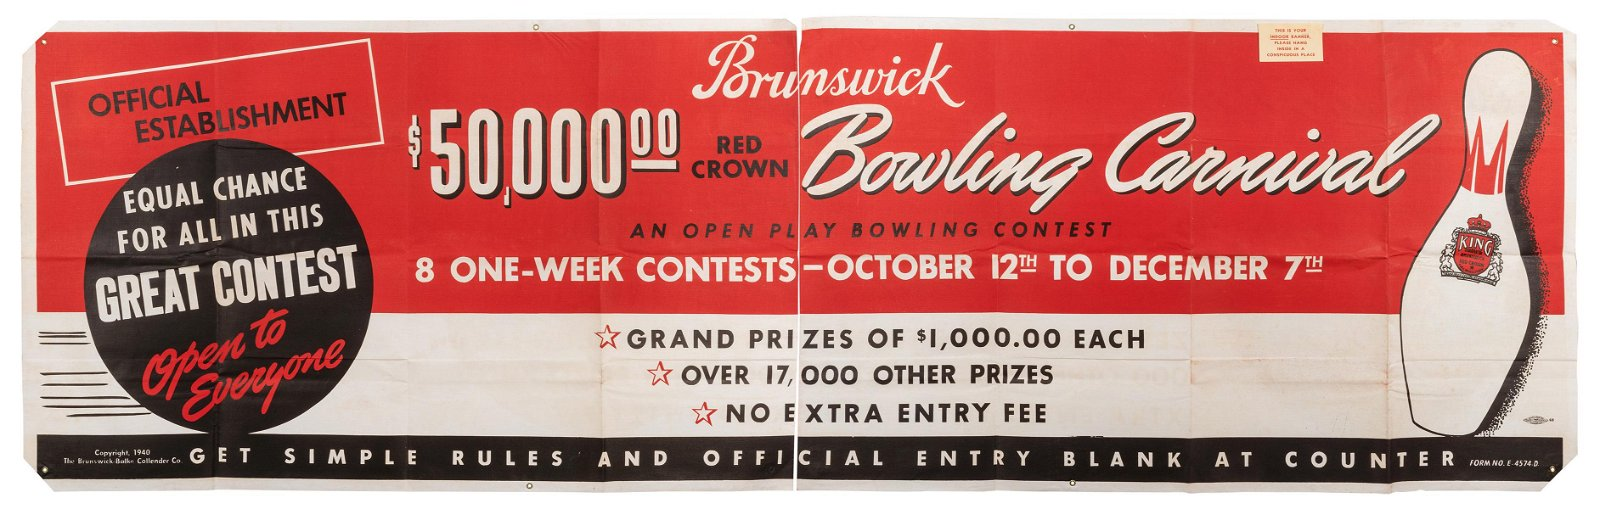 Brunswick Bowling Contest Advertisement Banner. The